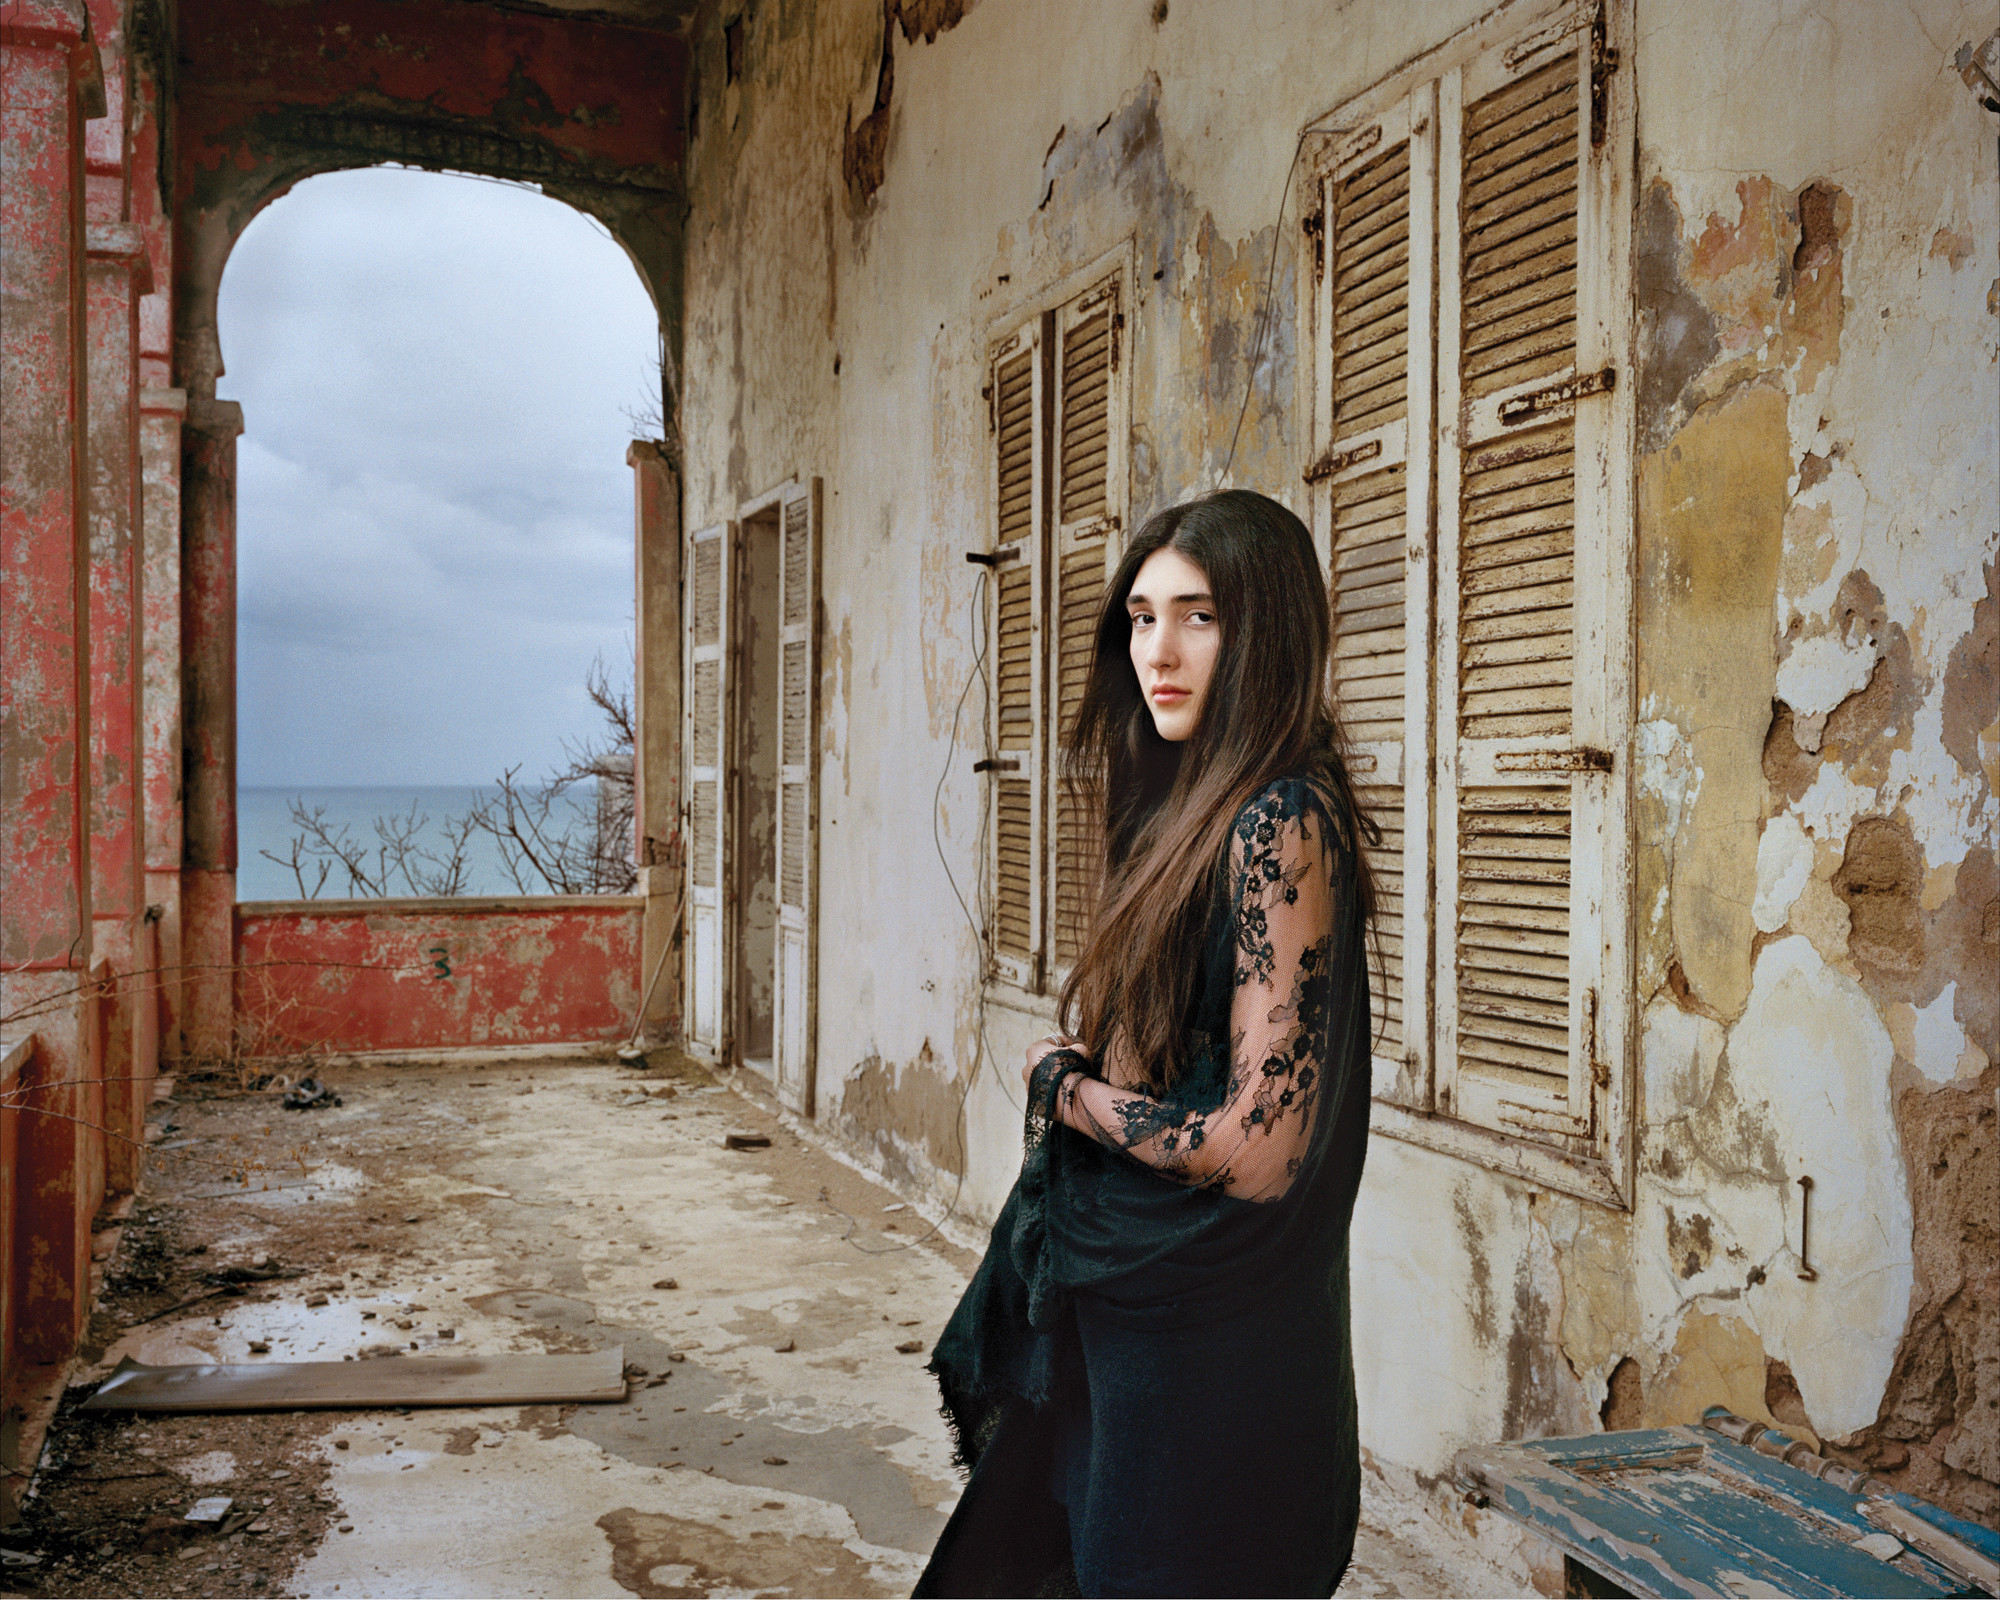 A light-skinned young woman with long, dark brown hair in a black, long lace sleeved dress stands confidently in a crumbling loggia. She gazes at the viewer with a serious, captivating look.